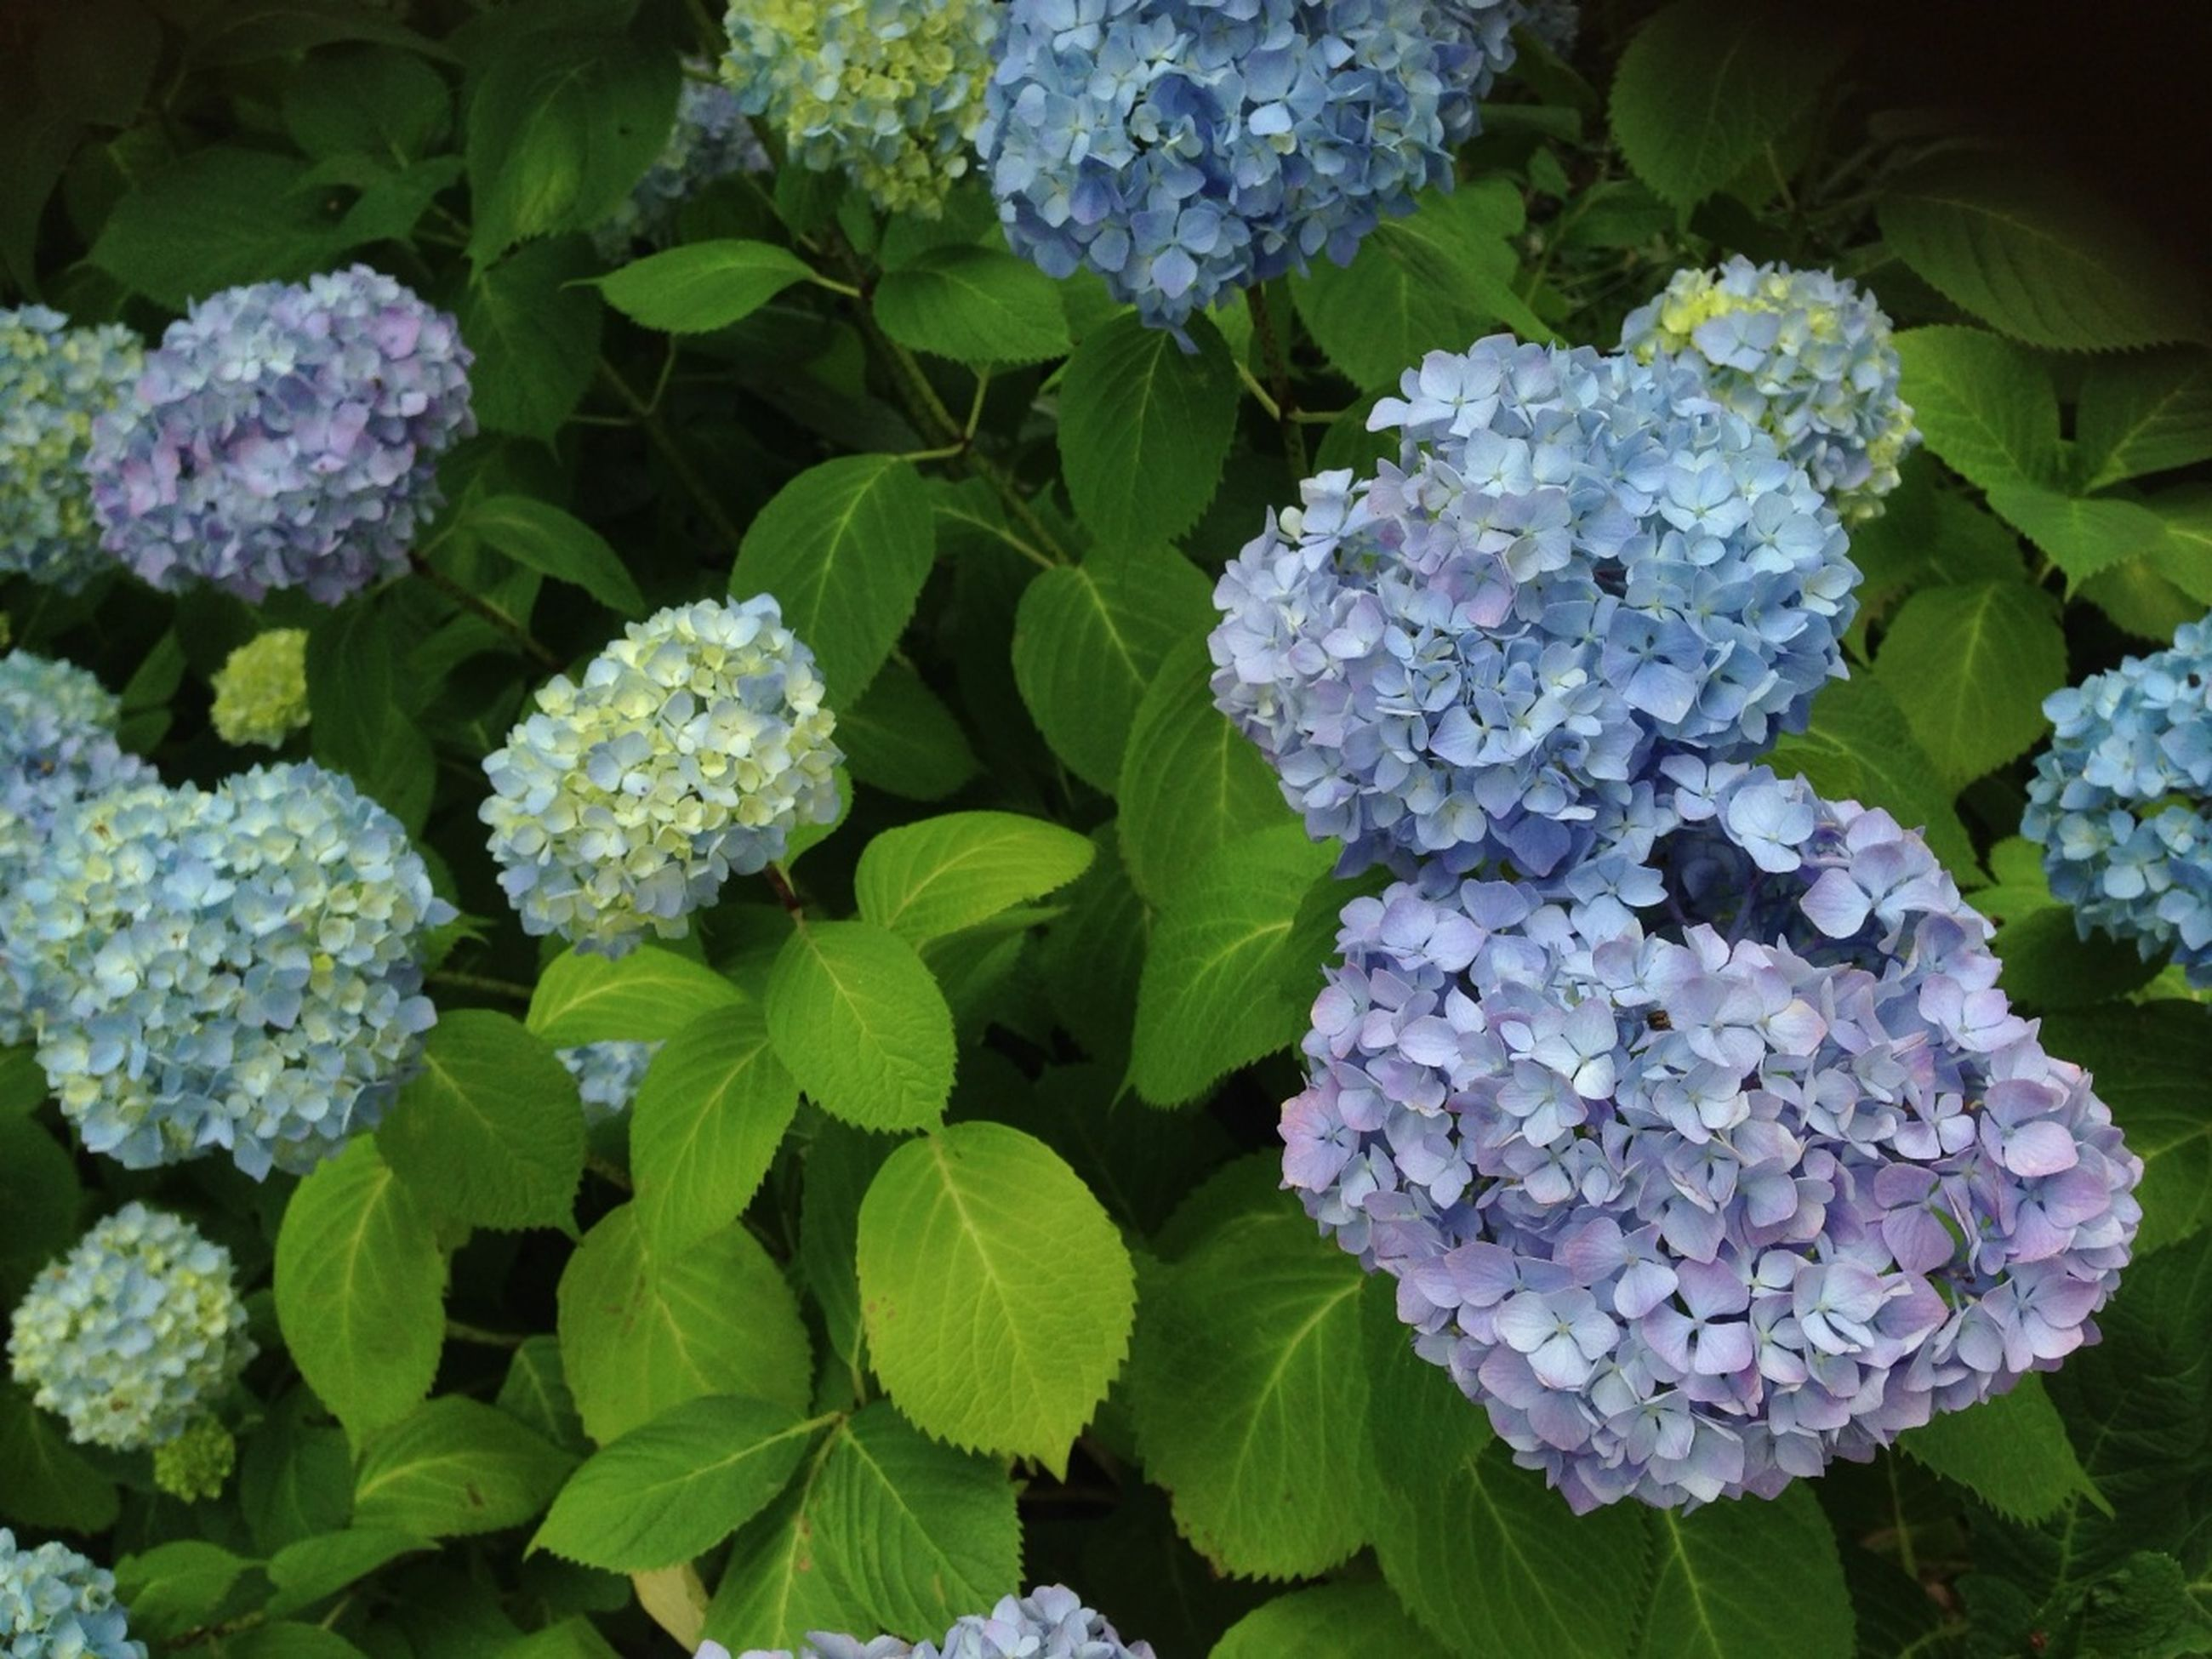 flower, freshness, fragility, growth, beauty in nature, petal, plant, flower head, hydrangea, nature, blooming, leaf, purple, high angle view, white color, in bloom, bunch of flowers, park - man made space, blossom, close-up